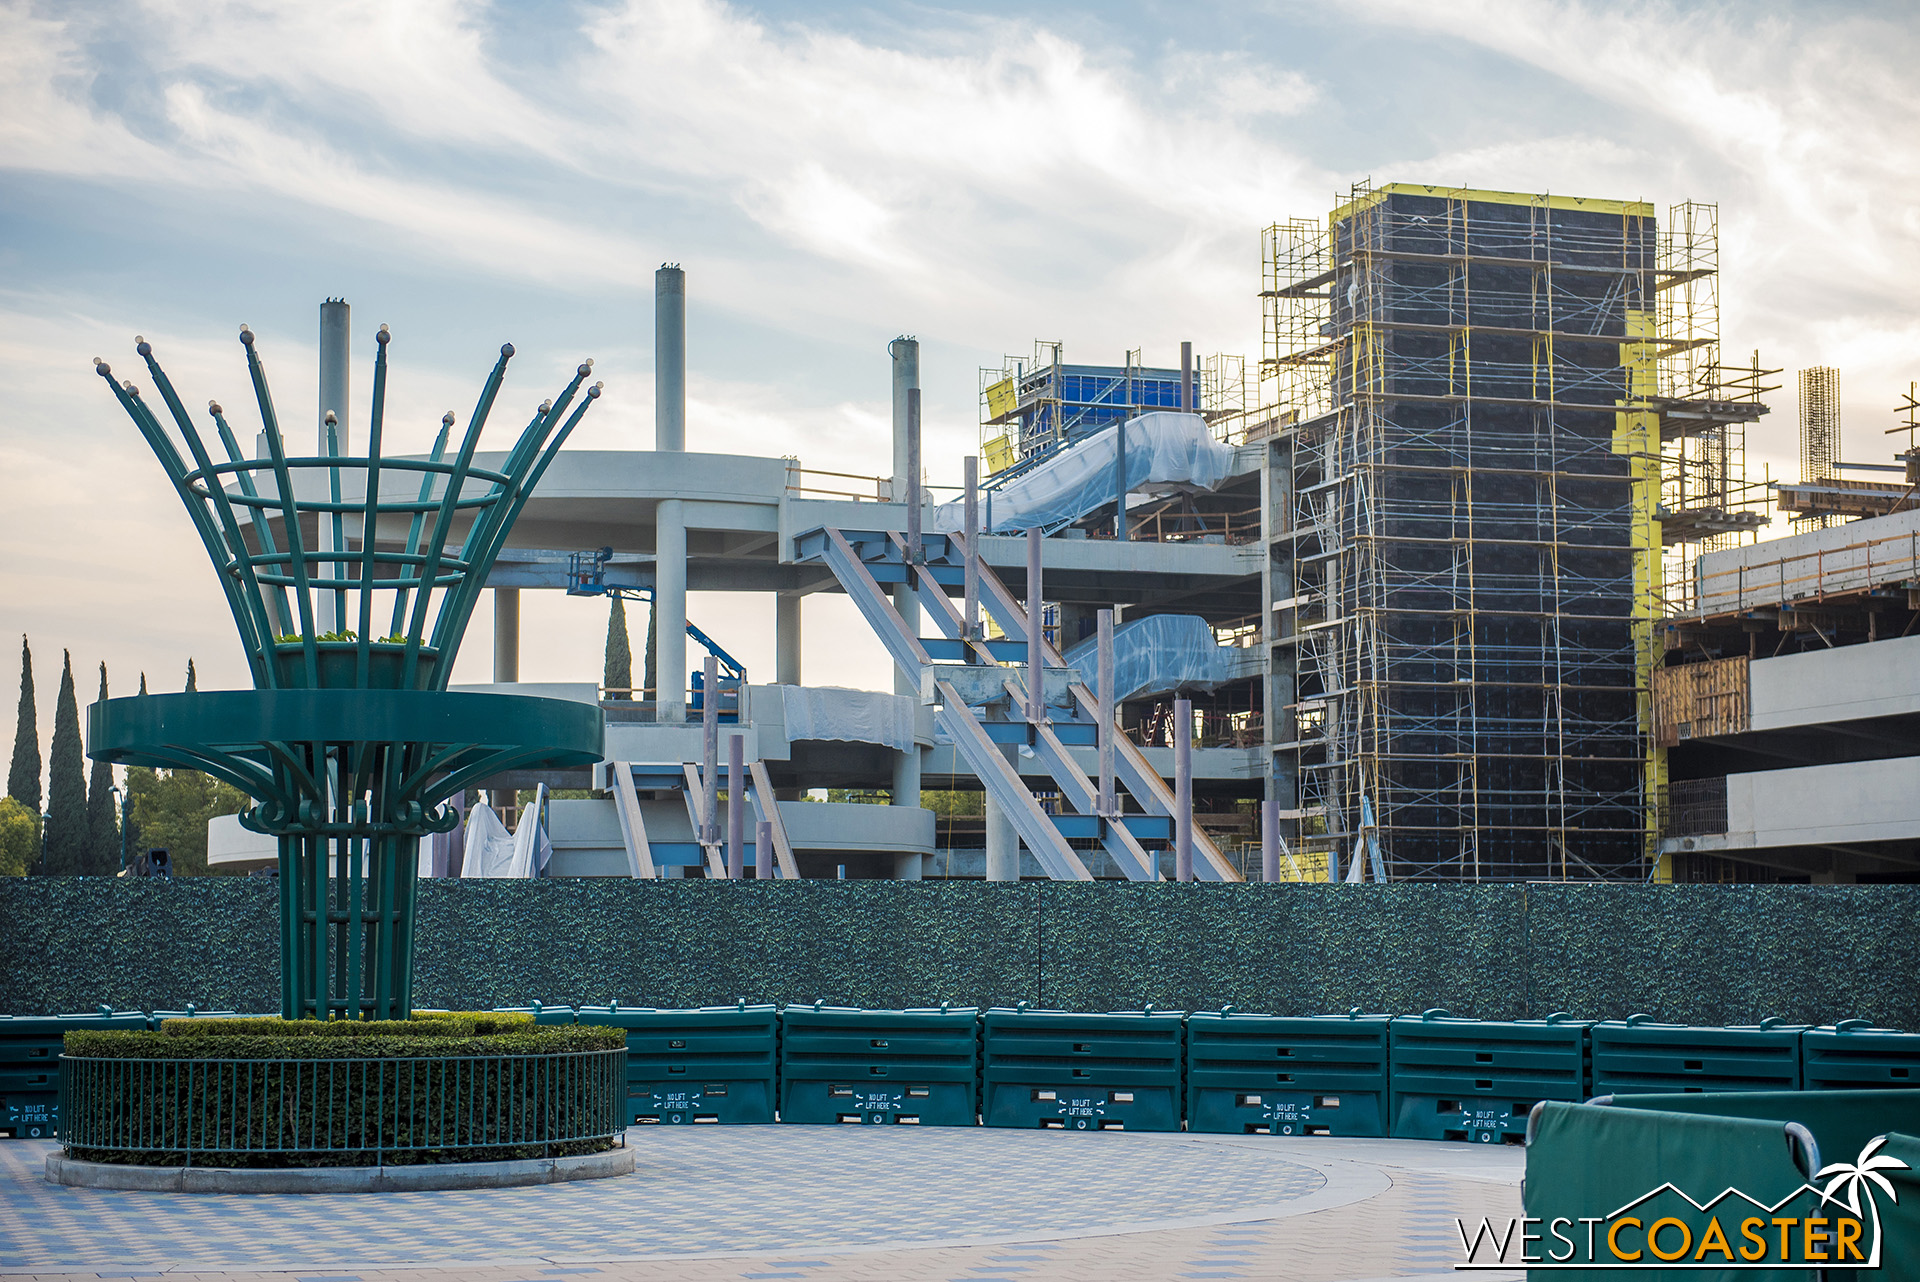 Here's the escalator promenade from the ground level.